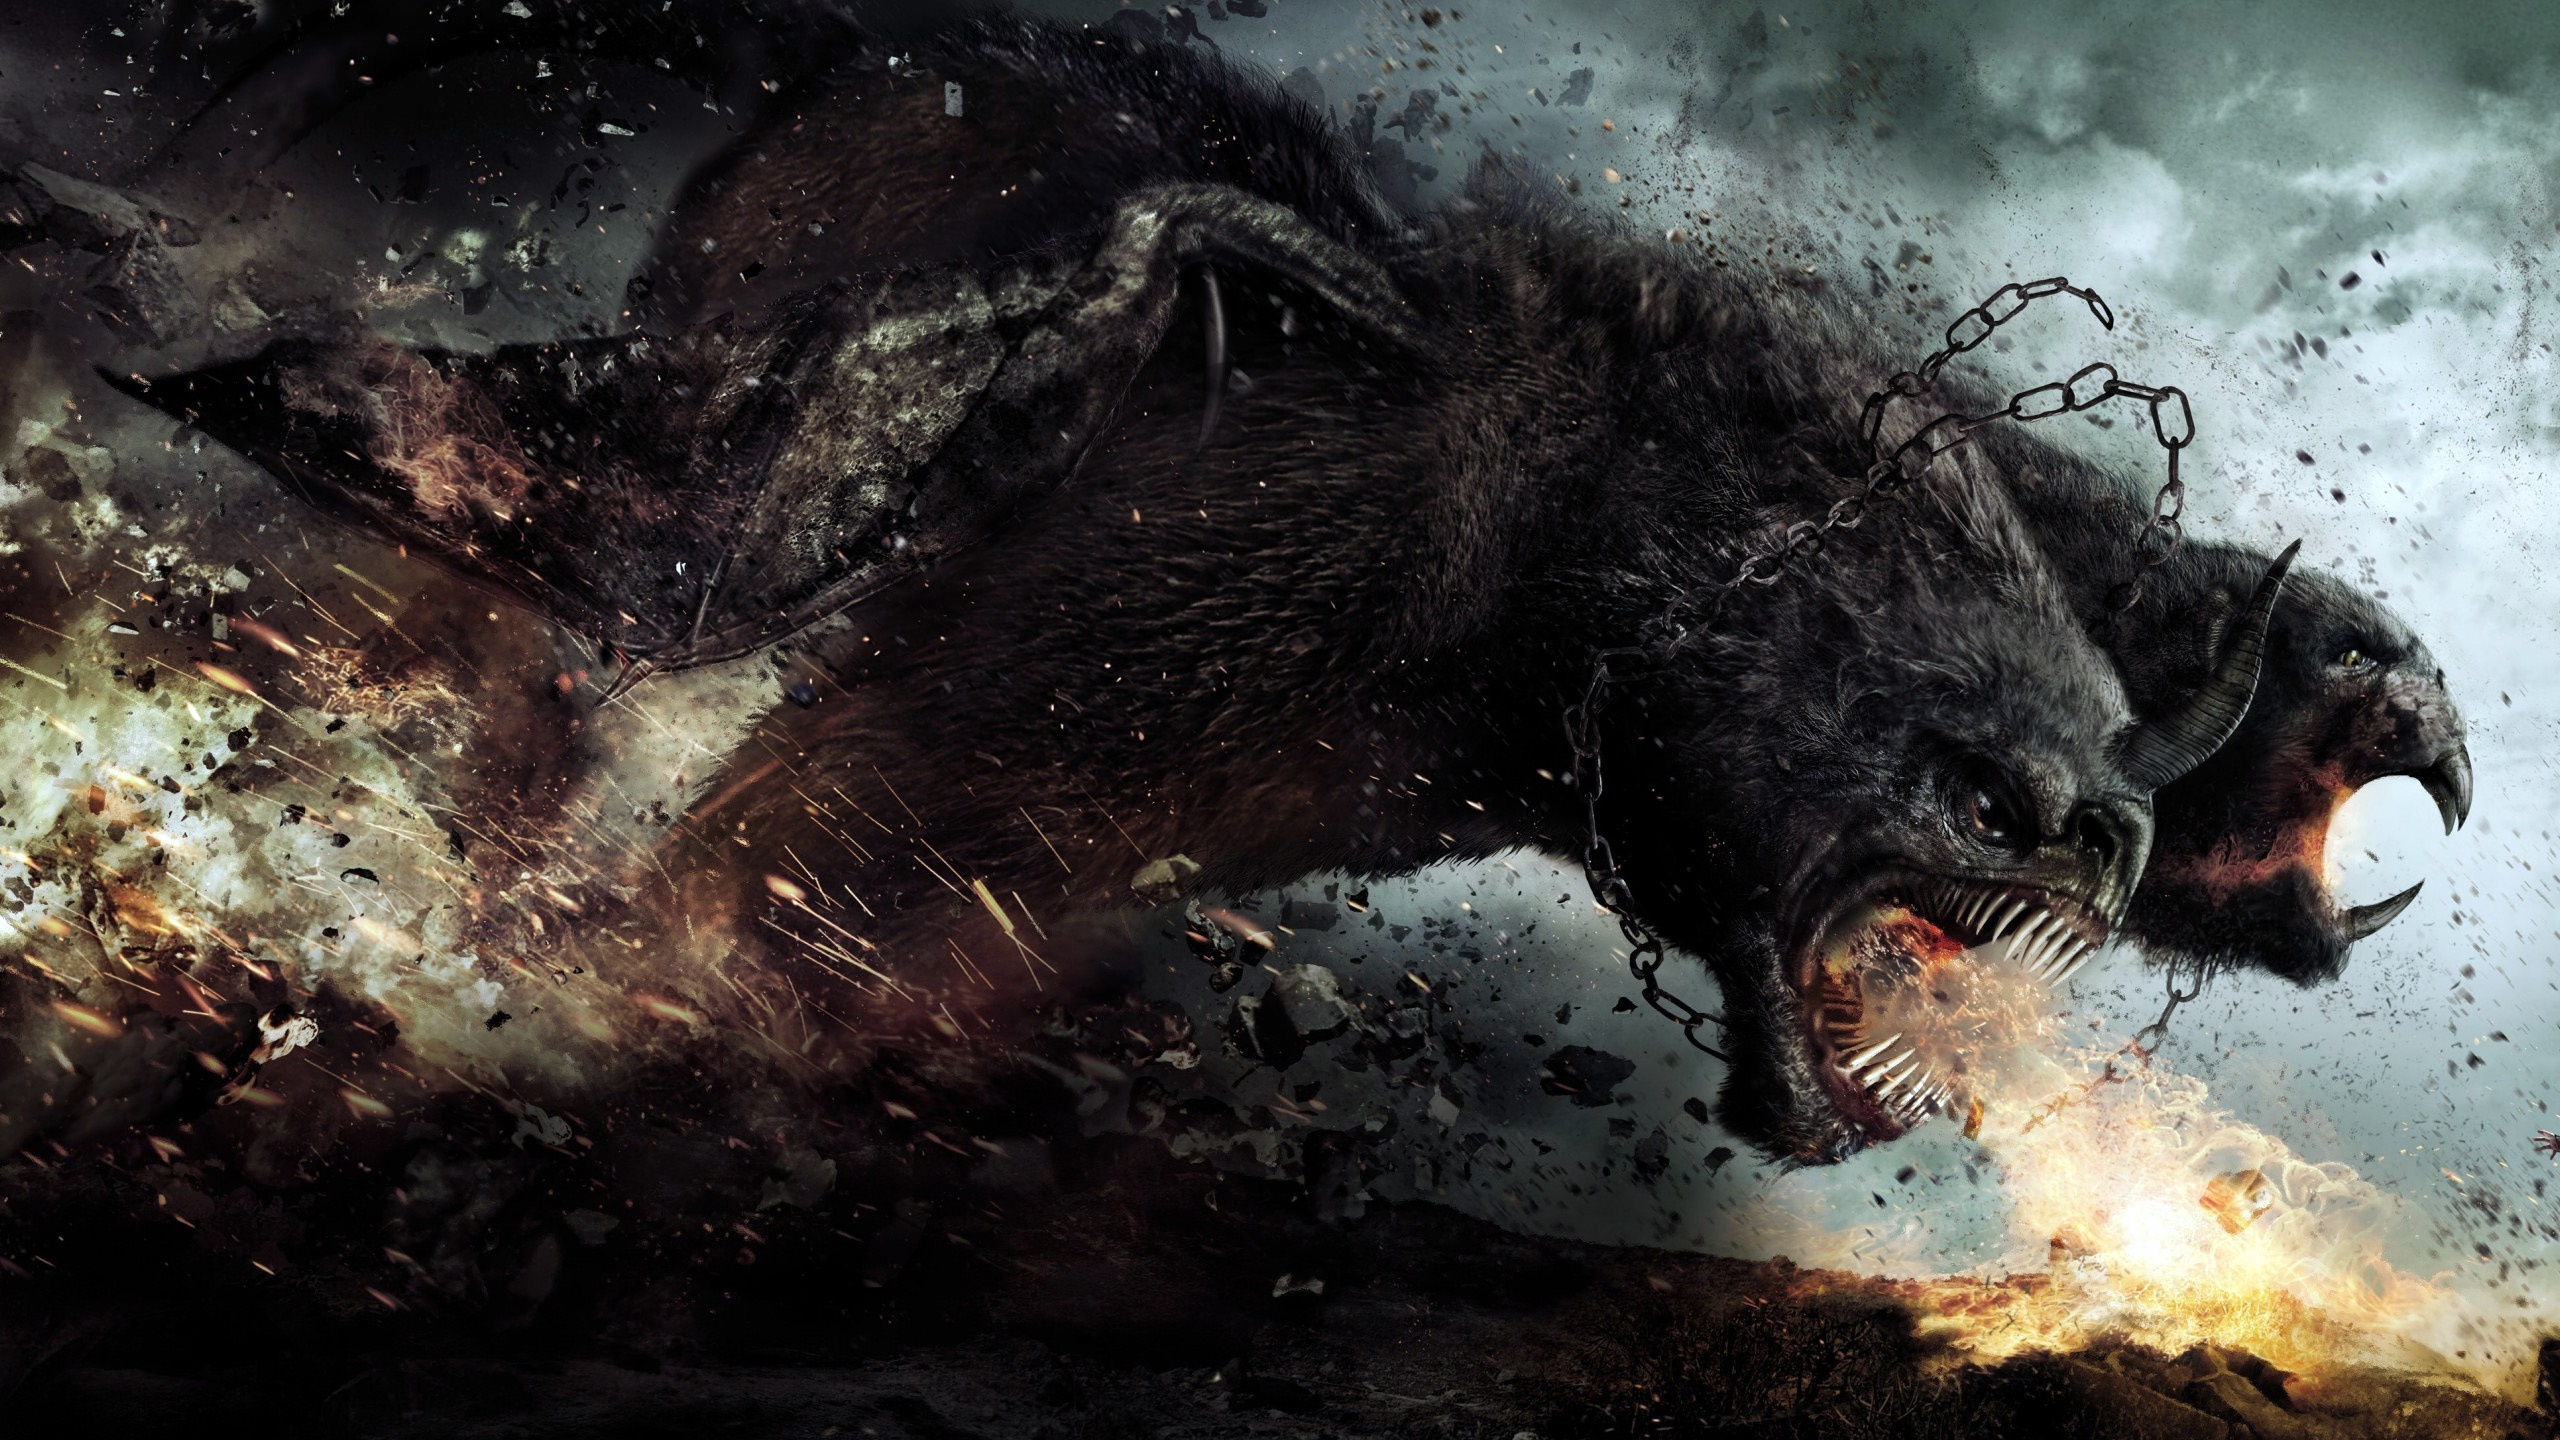 wrath of the titans movie wallpaper background 58204